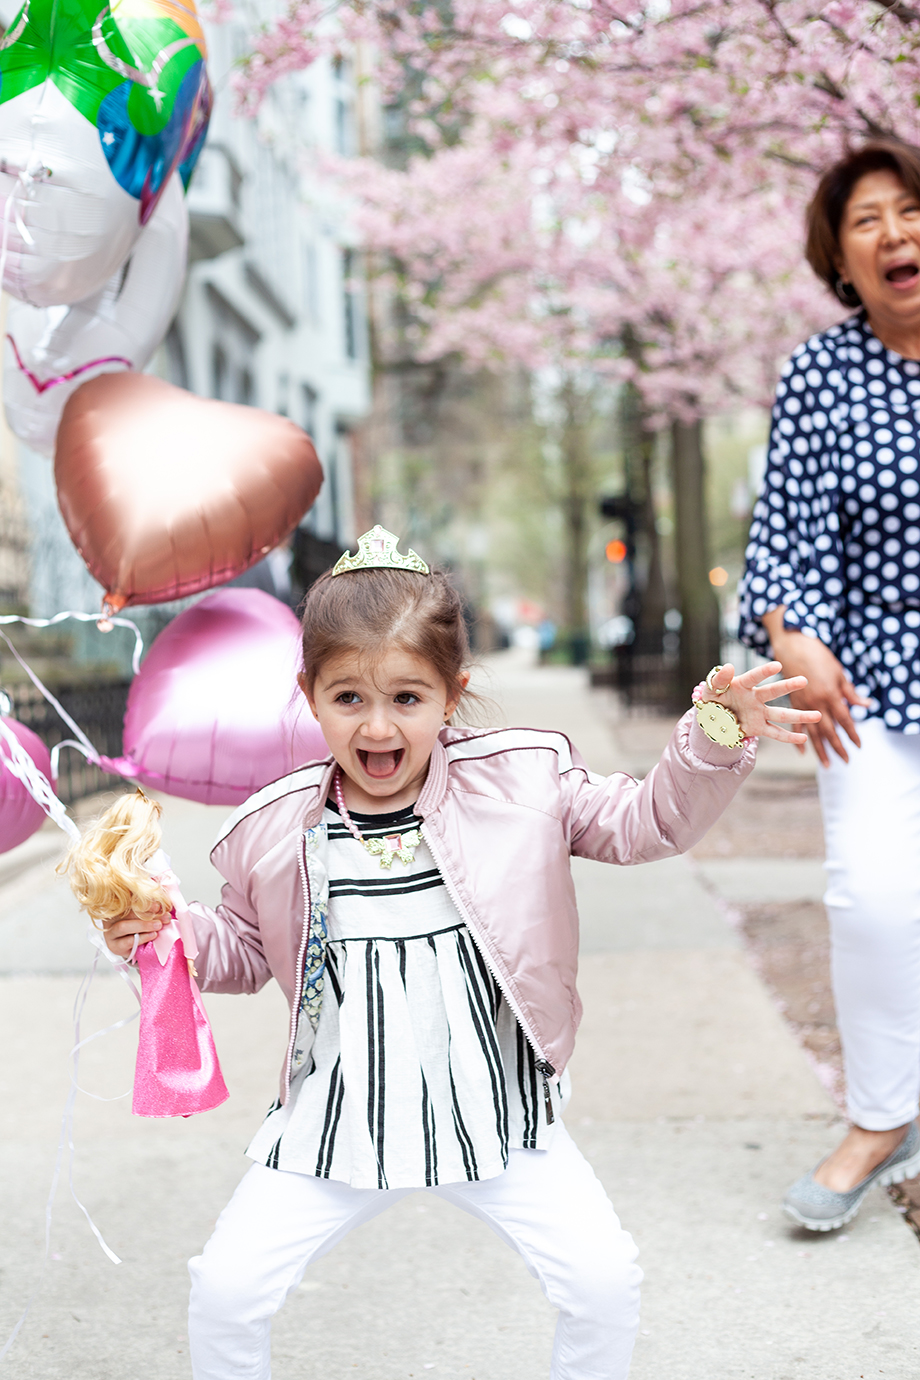 Zelda of Glitter and Bubbles wears a pink jacket and striped shirt while holding balloons.